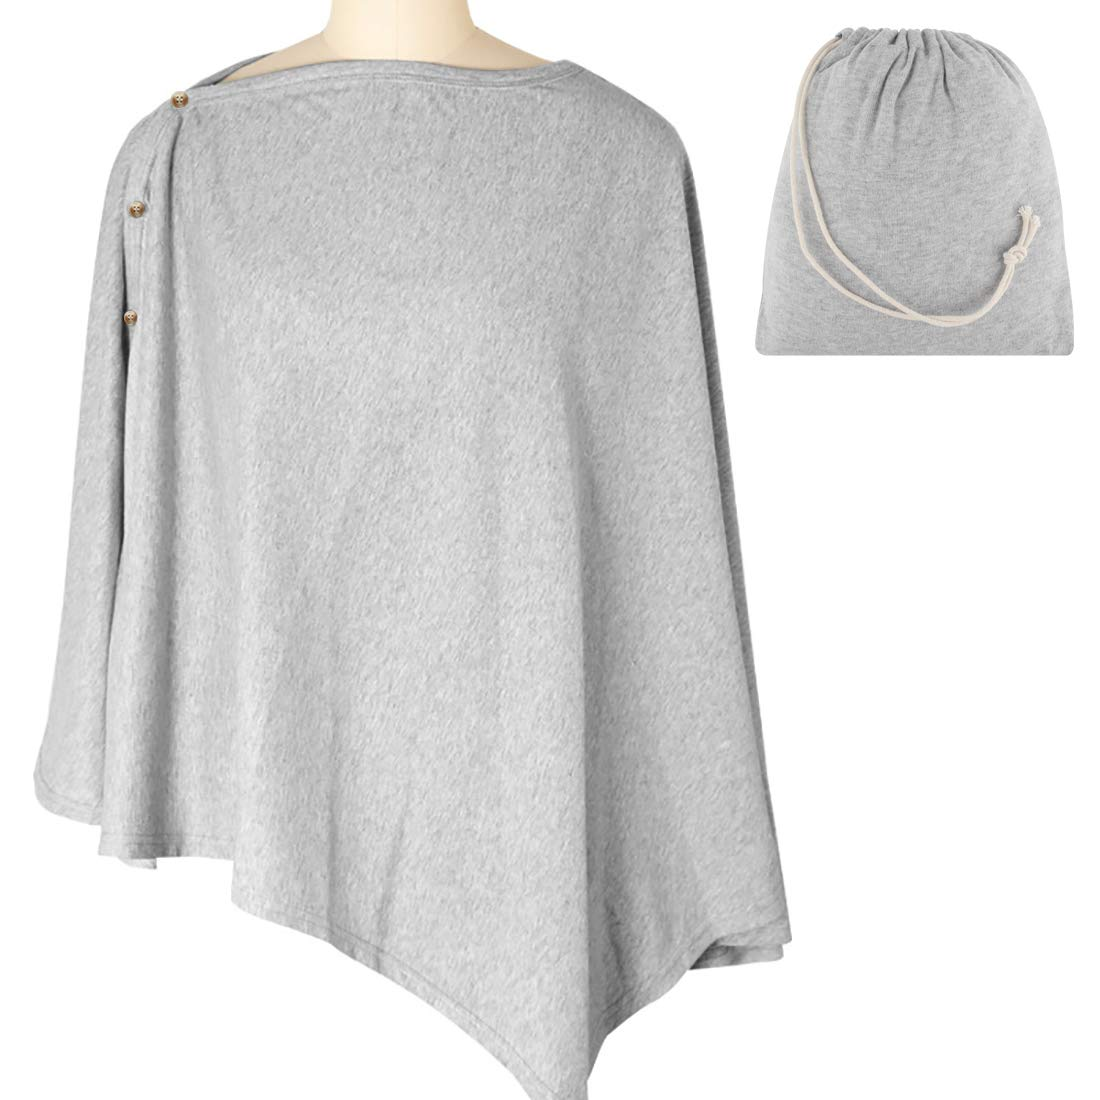 Breastfeeding Cover with Matching Pouch, 360° Full Privacy Nursing Breastfeeding Cover Ups, Nursing Cover for Breastfeeding, Soft, Breathable(Grey)